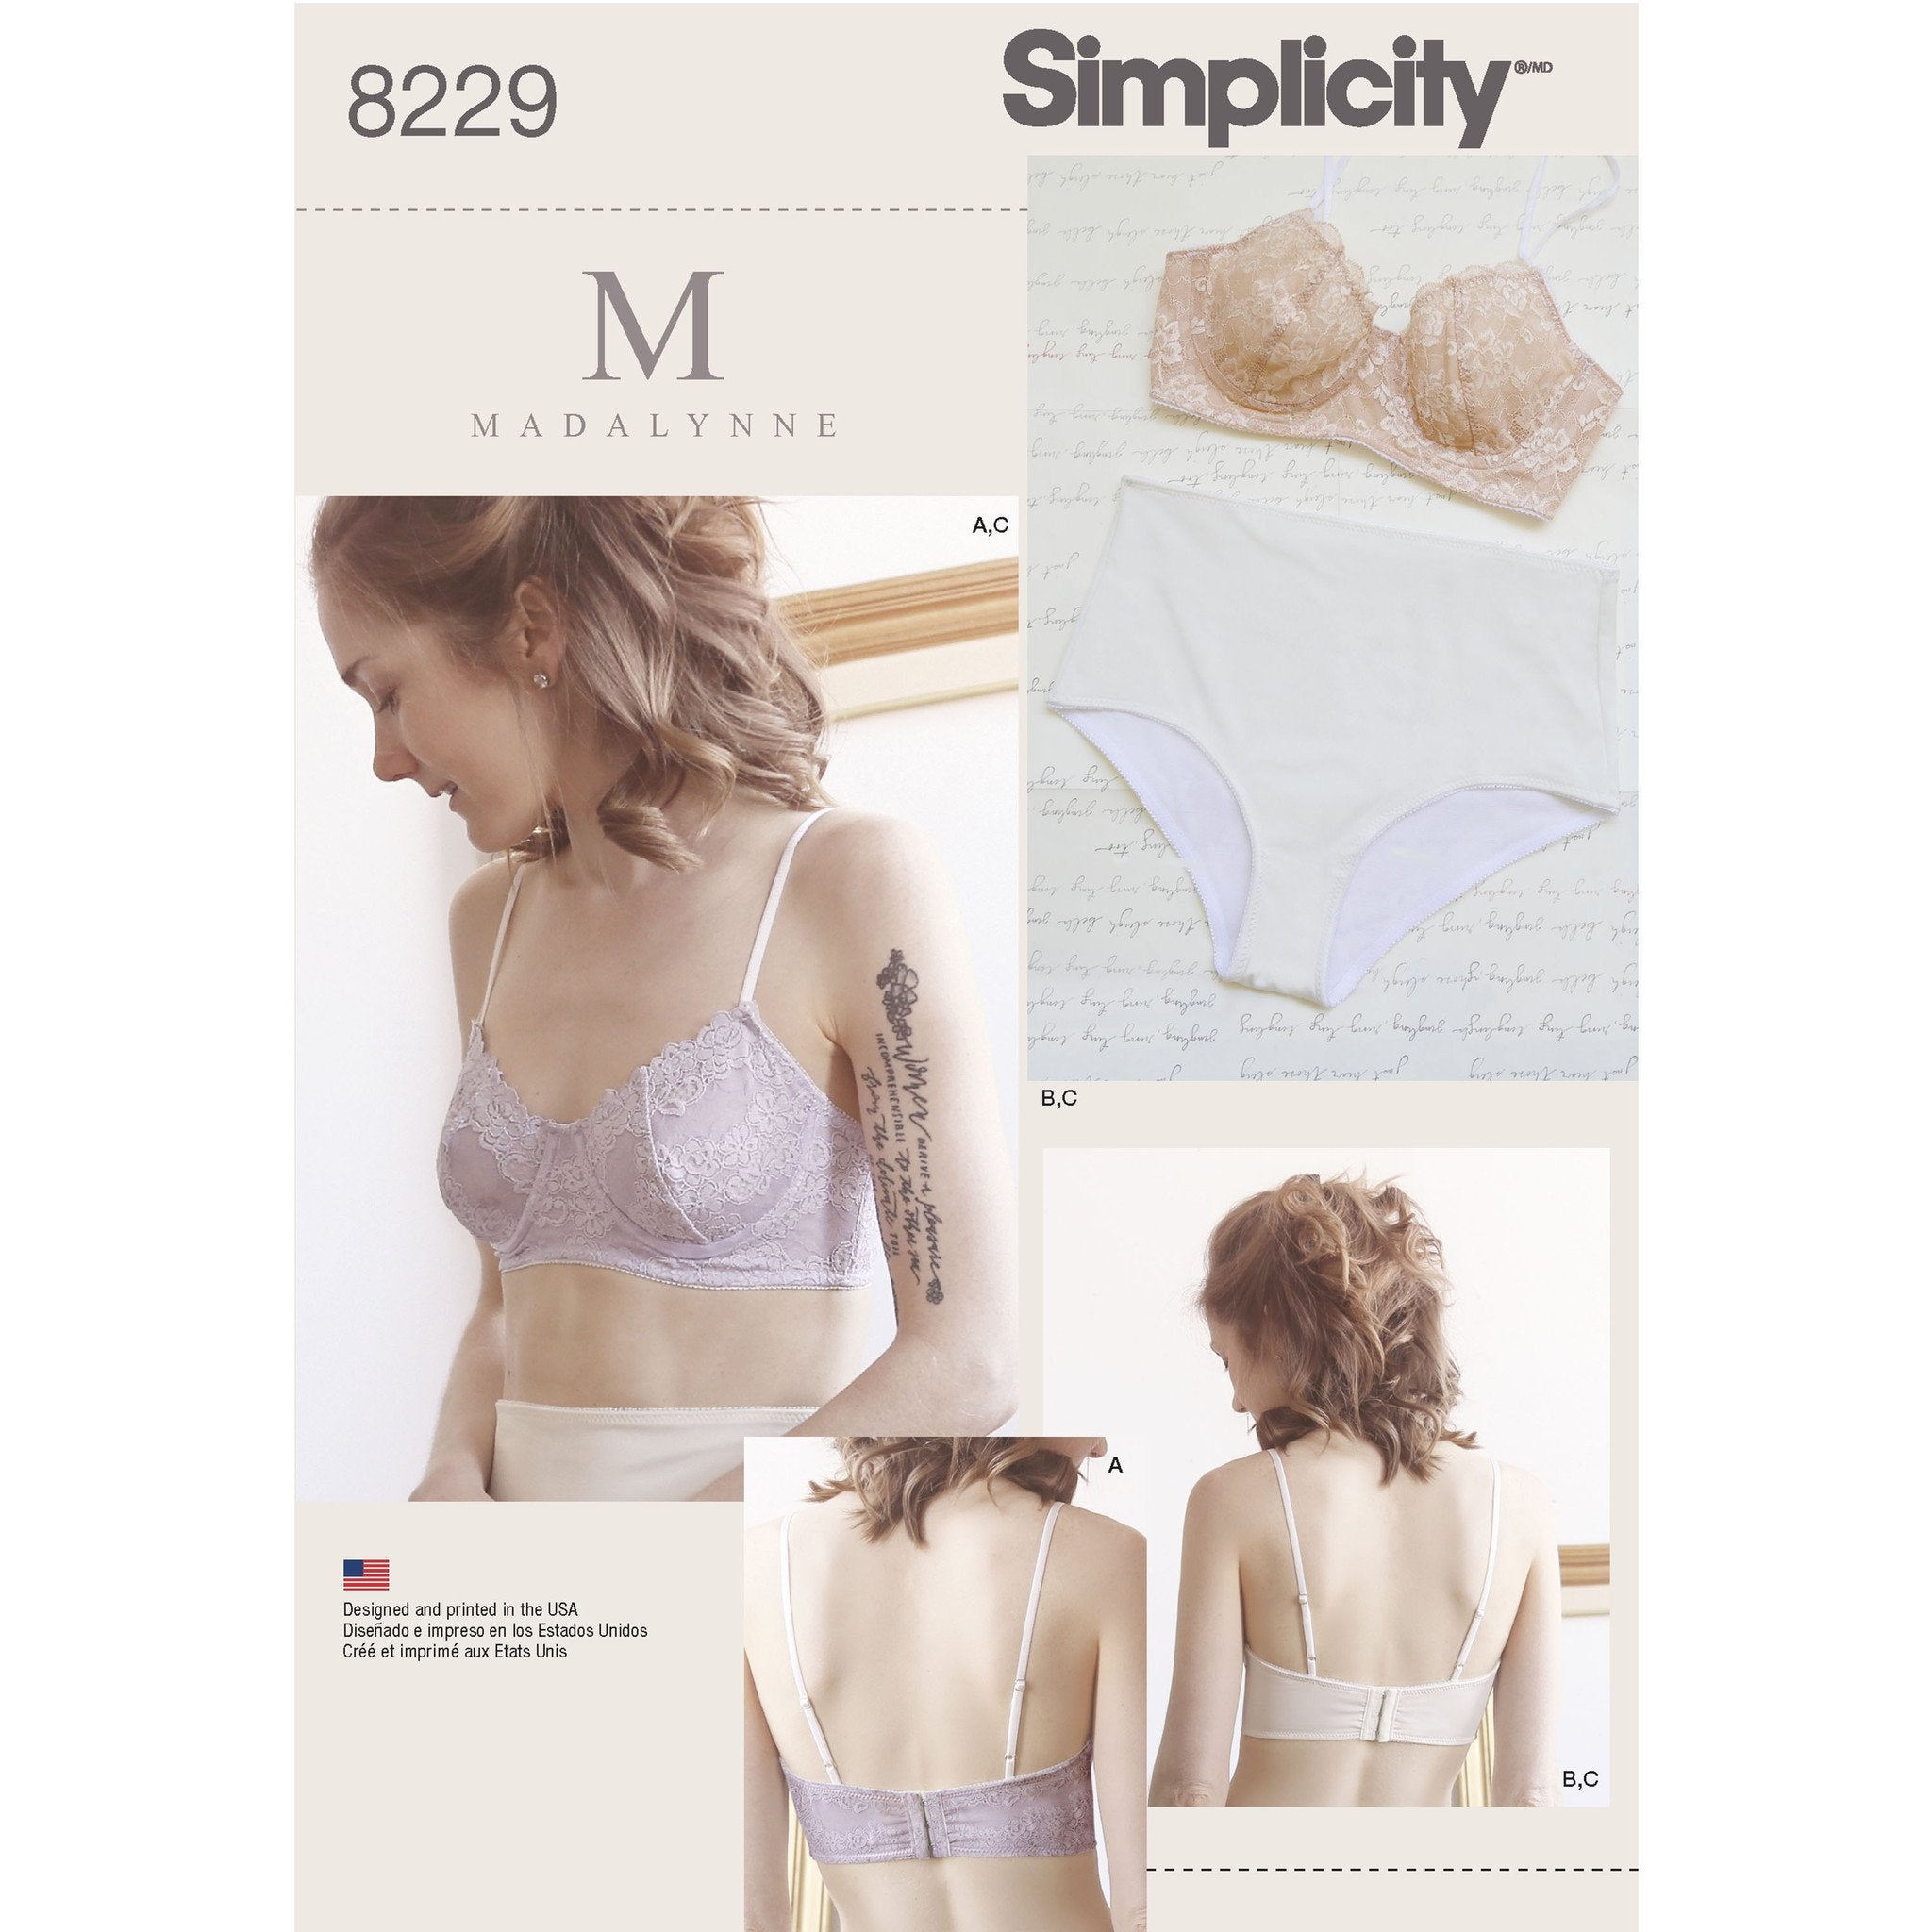 Simplicity S8229 Misses' Underwire Bras and Panties